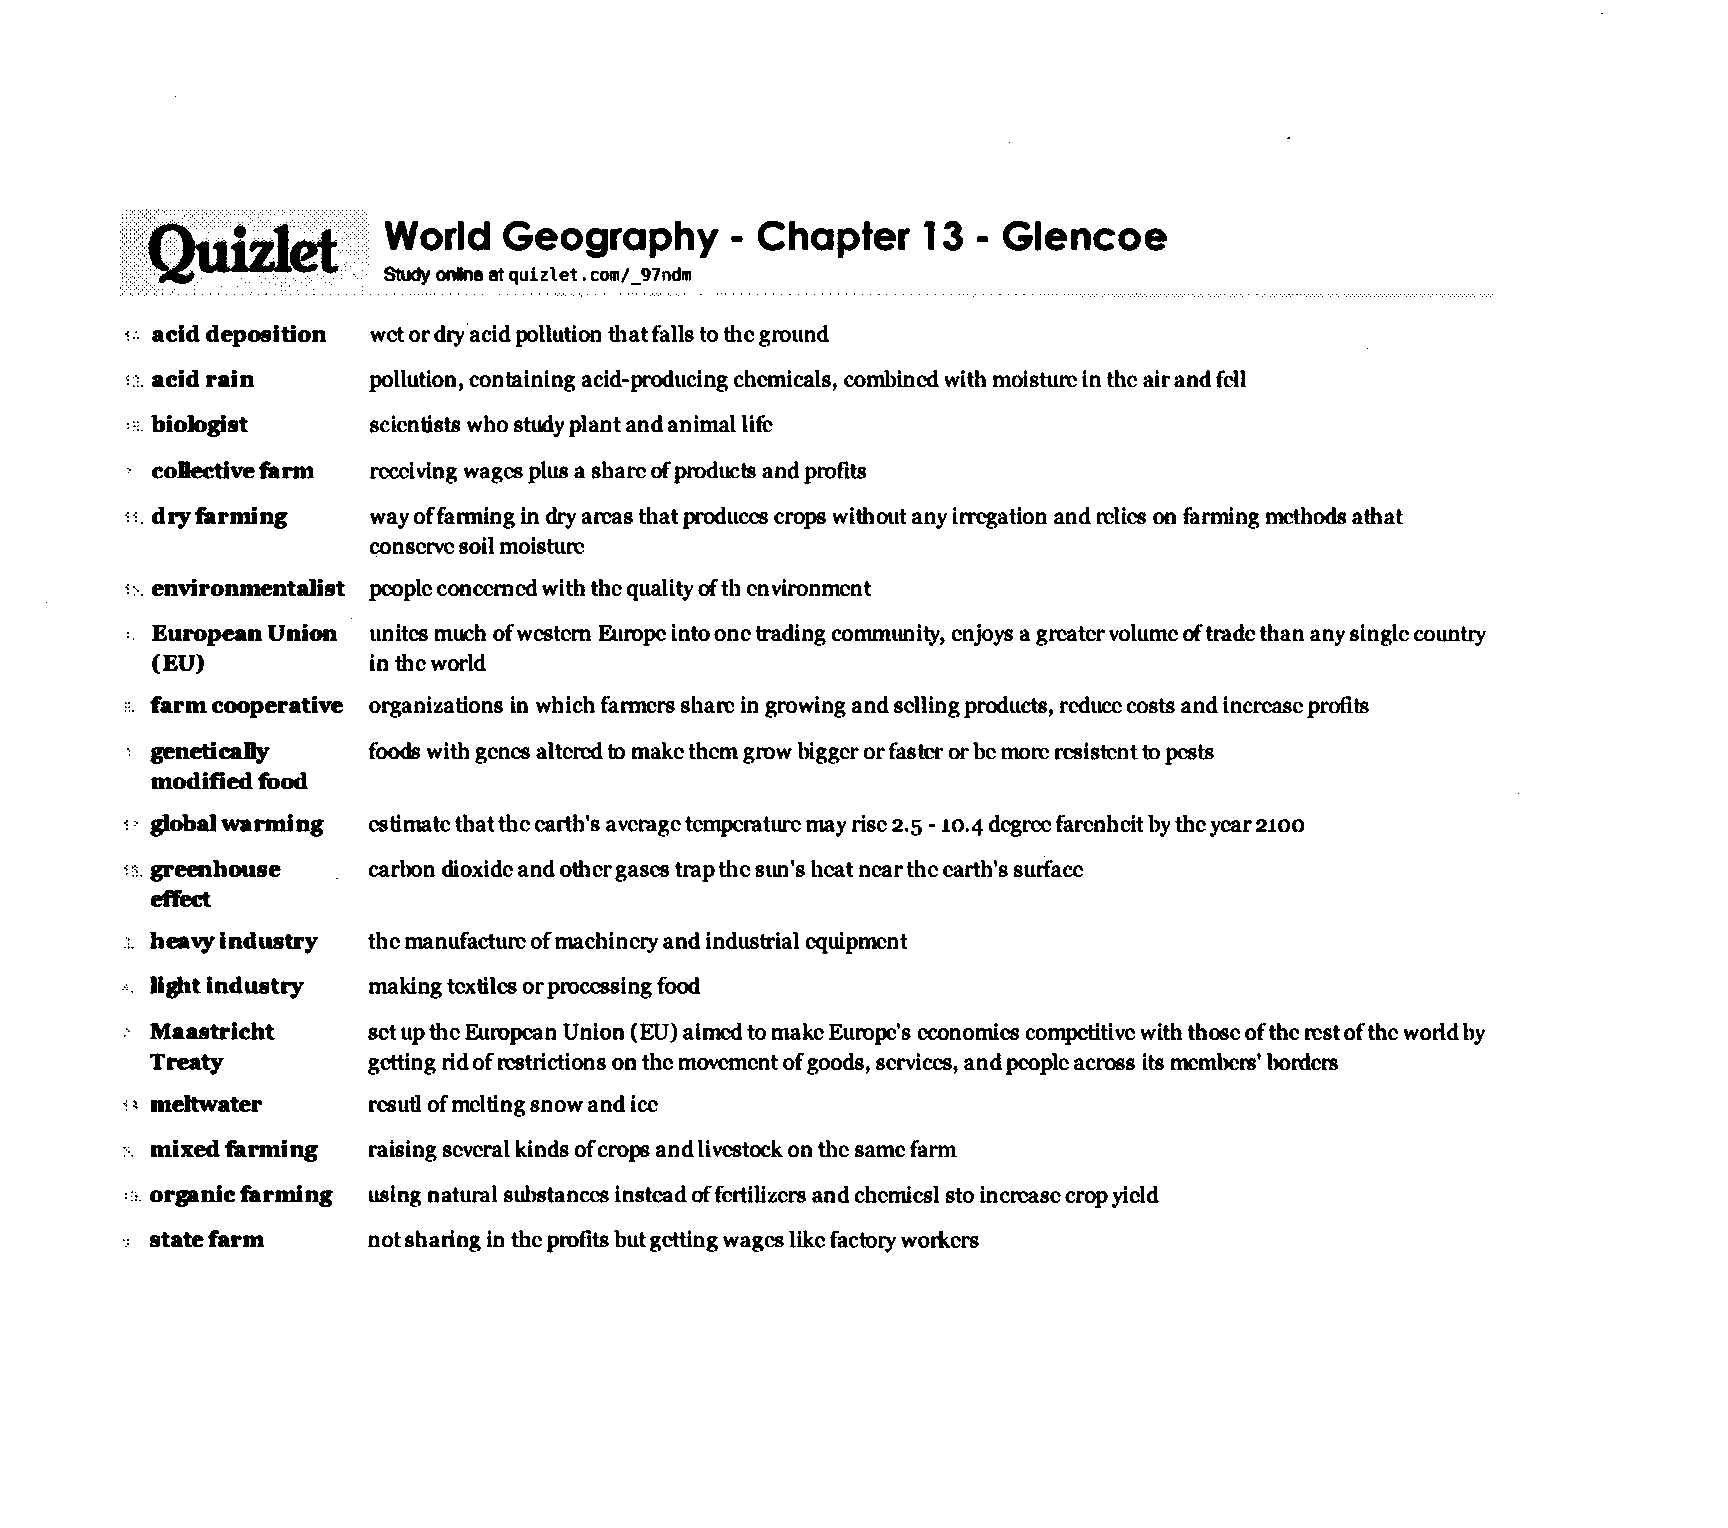 Worksheets Glencoe World Geography Worksheets glencoe world geography worksheets free library worksheets